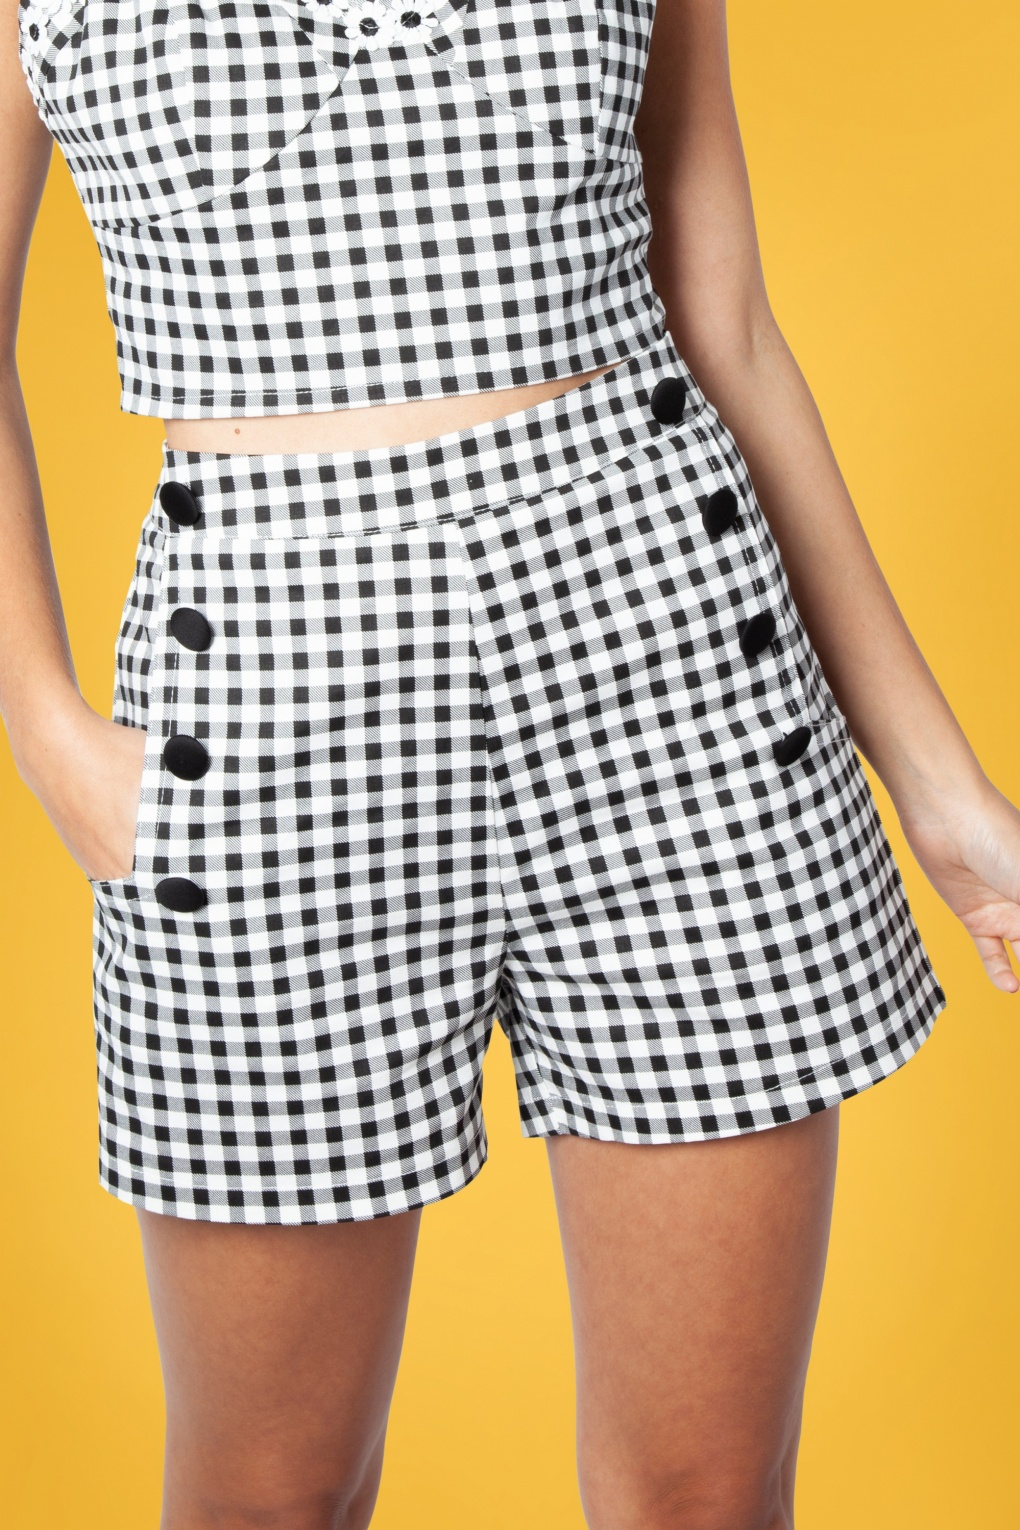 1950s Shorts History | Summer Clothing 50s Mila Gingham Shorts in Black and White �28.45 AT vintagedancer.com